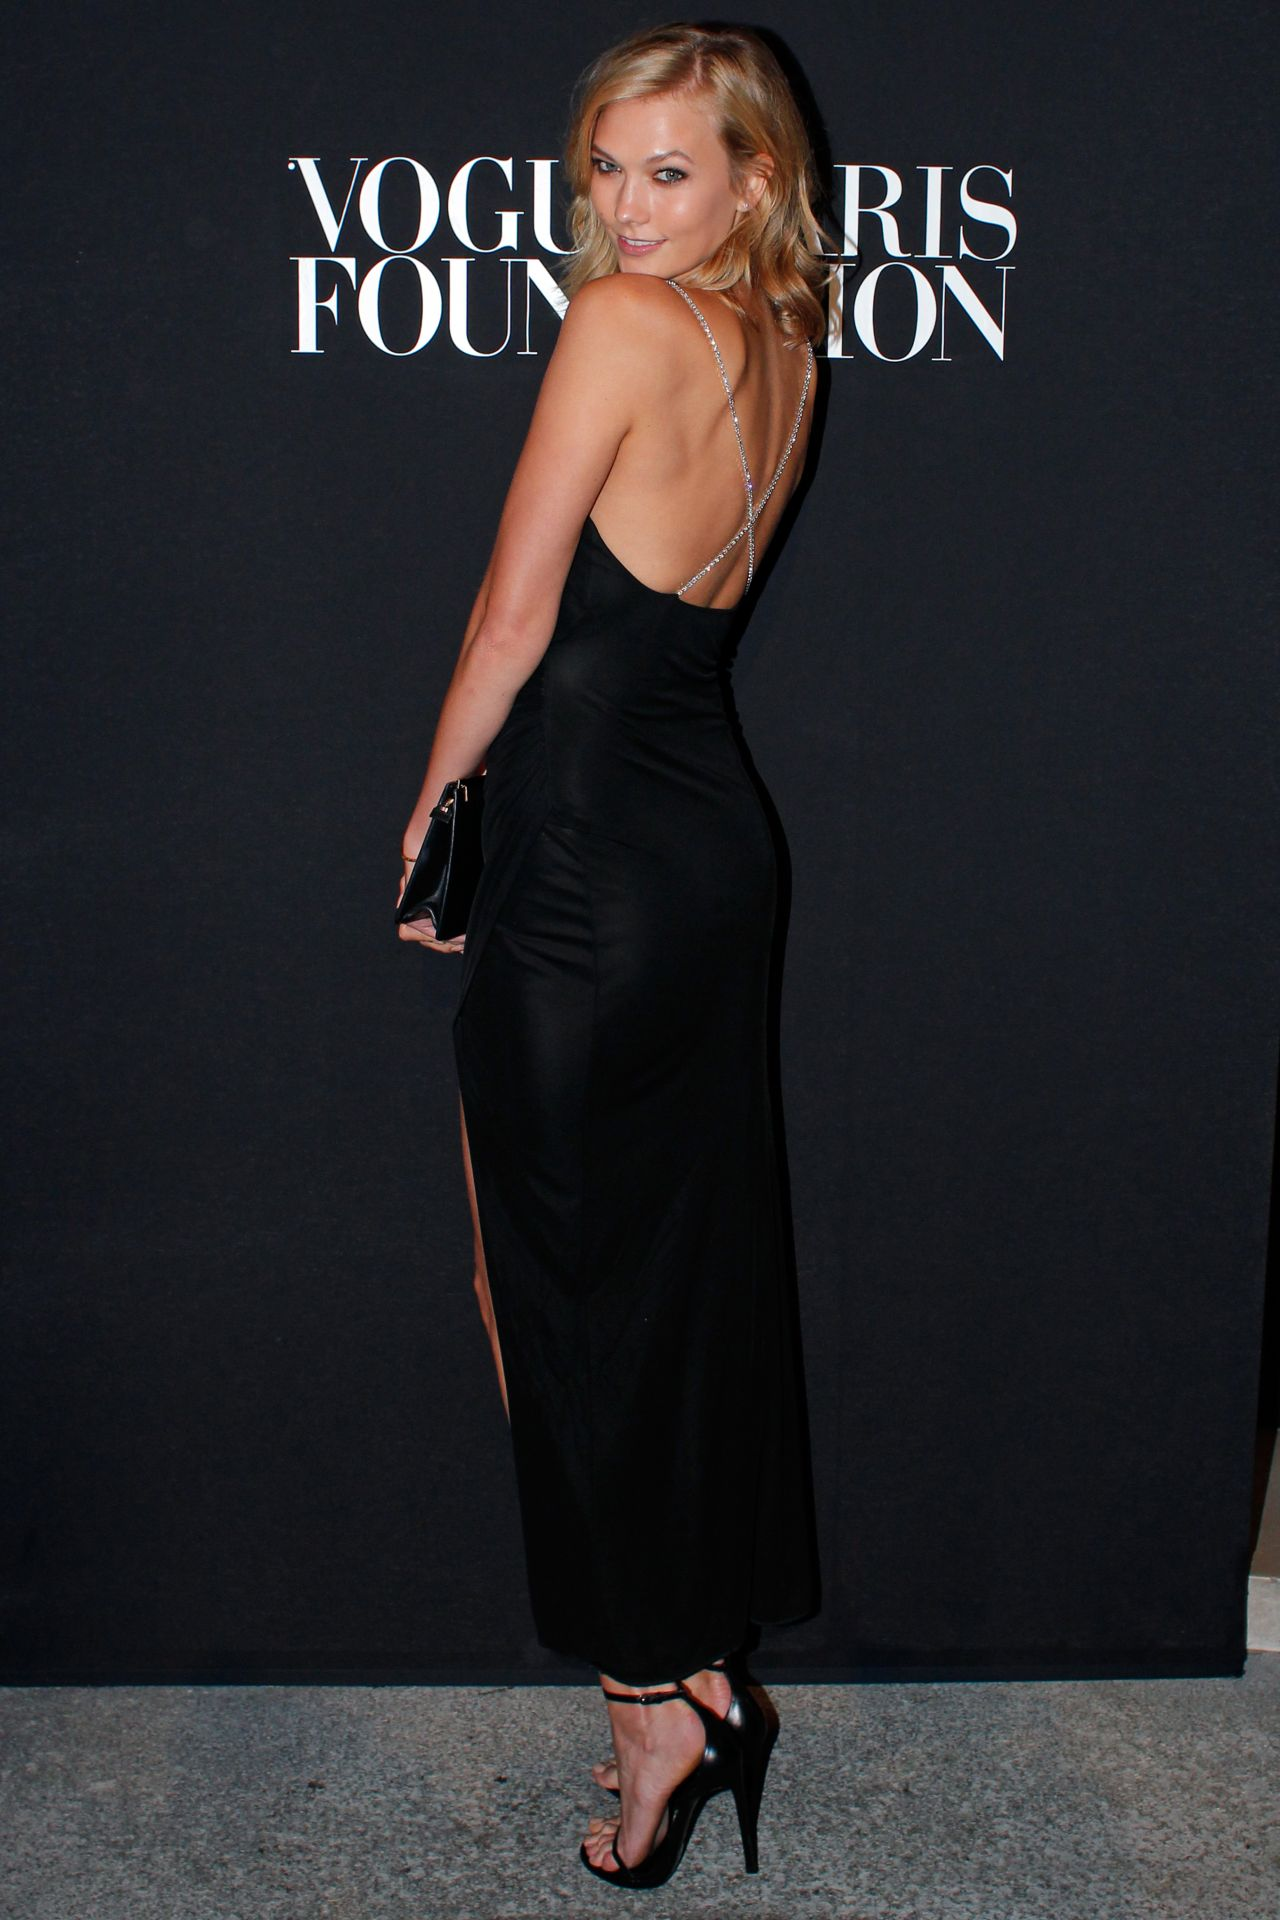 Karlie Kloss - Vogue Foundation Gala – Paris Fashion Week – July 2014